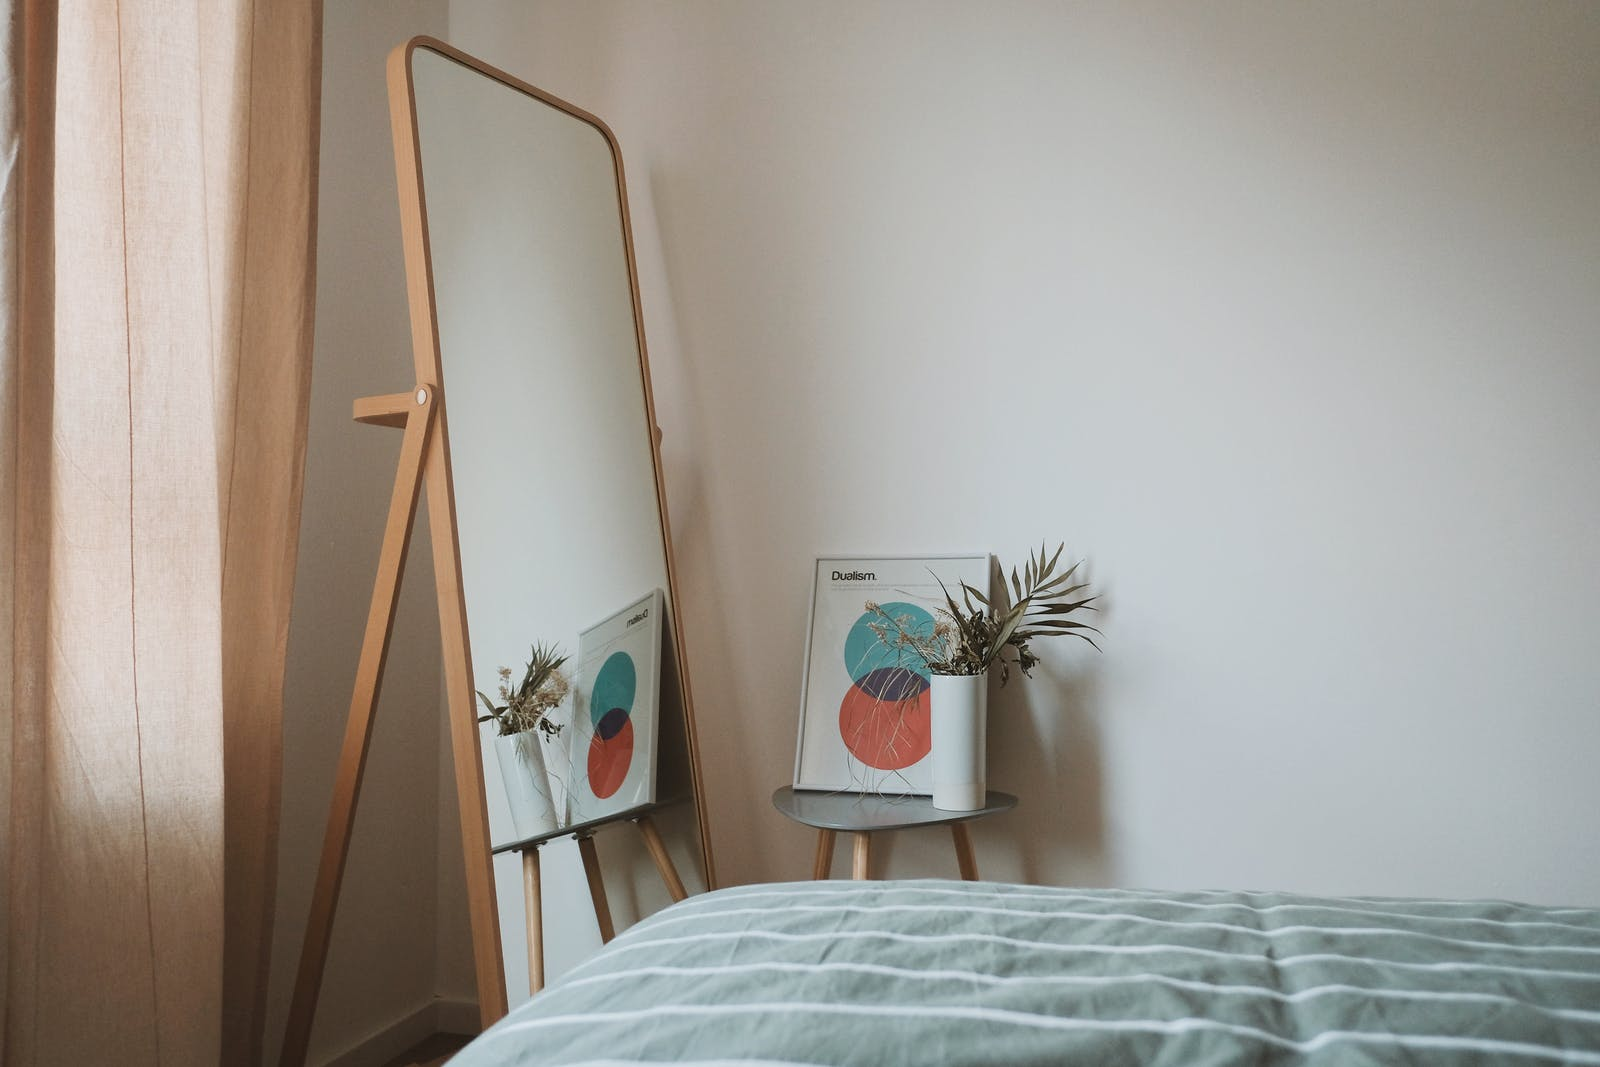 Room with white walls and standing mirror